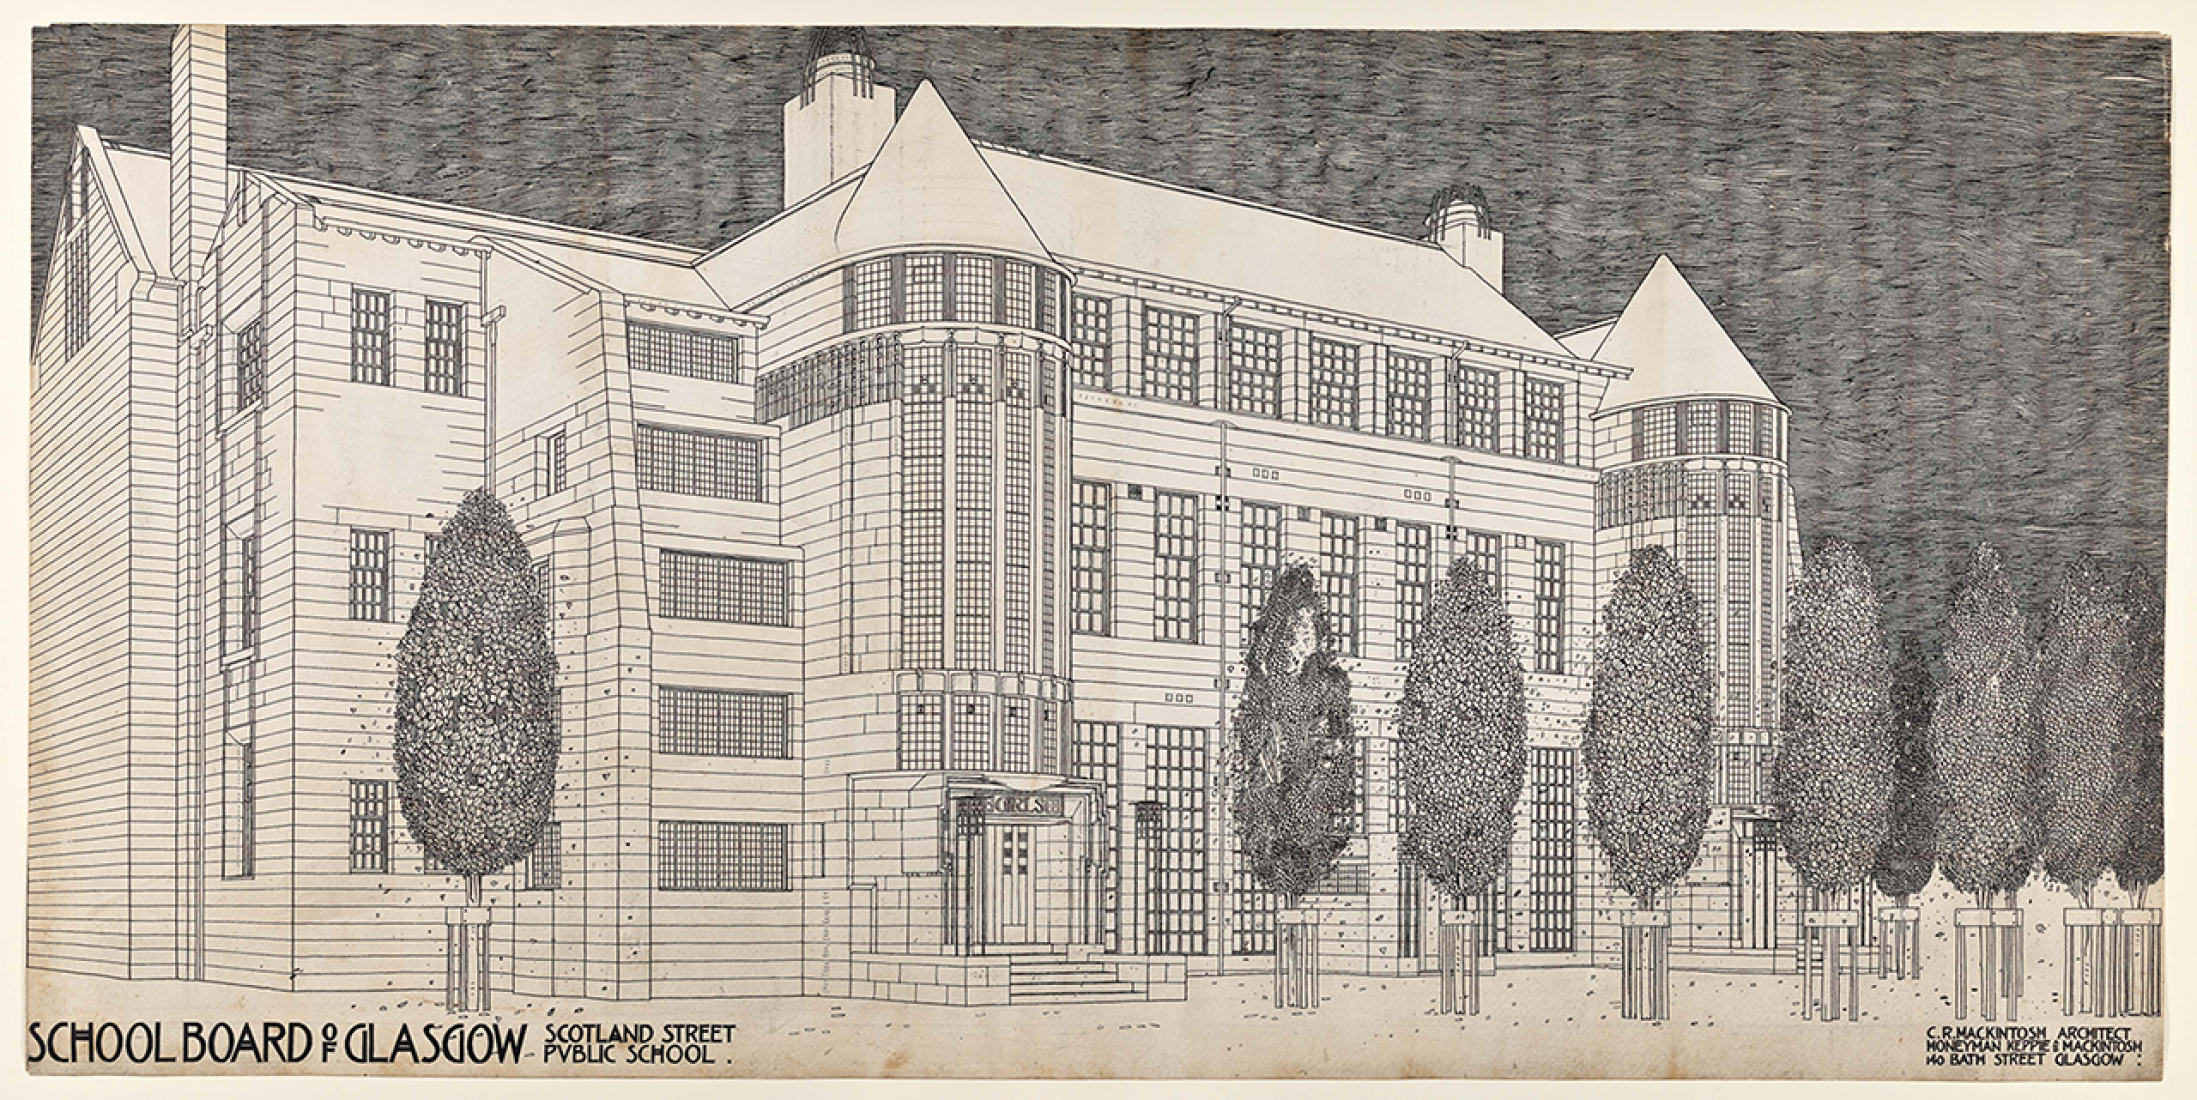 Design for Scotland Street School by Charles Rennie Mackintosh. Image © Hunterian, University of Glasgow. Courtesy of RIBA.